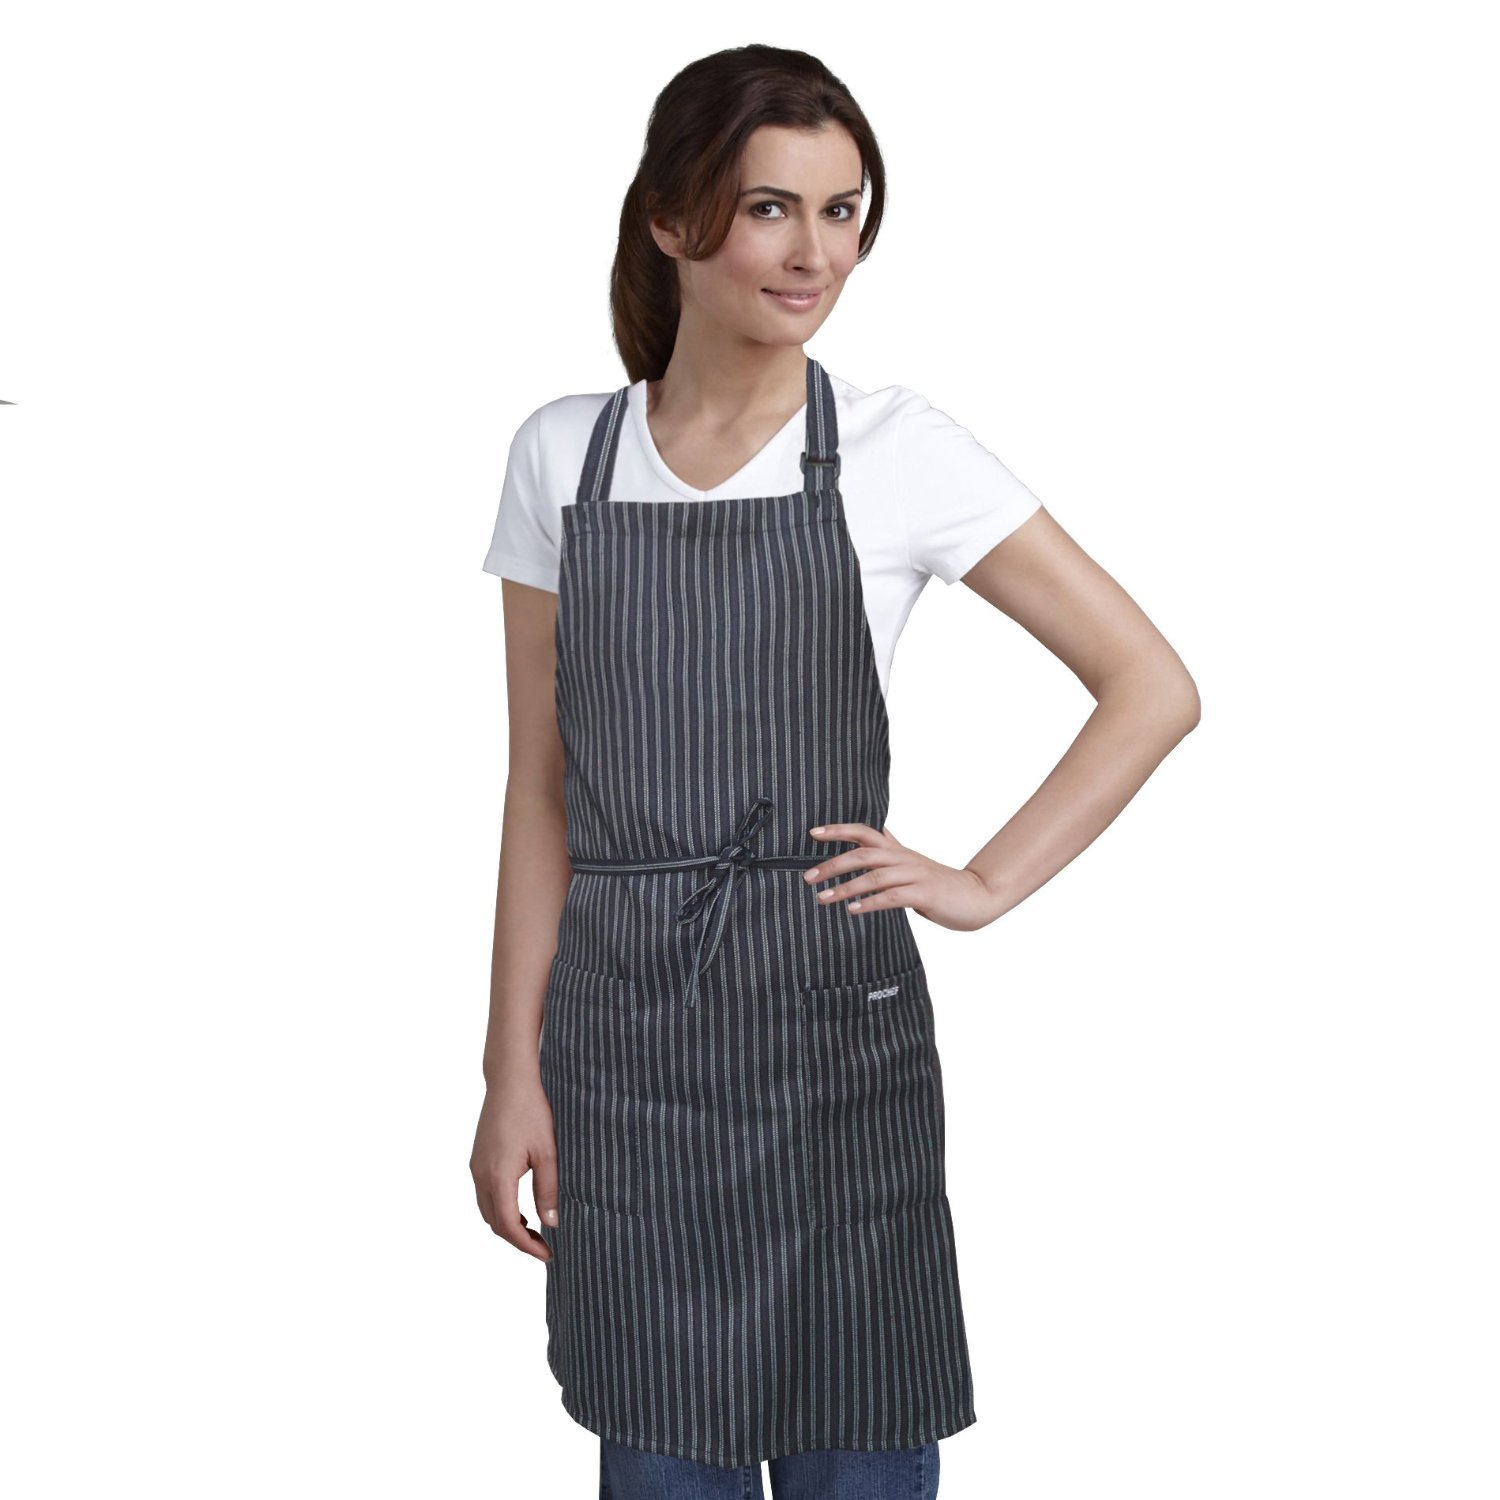 White apron toronto - Bib Apron Striped With Pockets Kitchen And Restaurant Aprons For Women And Men Perfect For Chef And Restaurant Uniforms Chef Wear For All Cooking